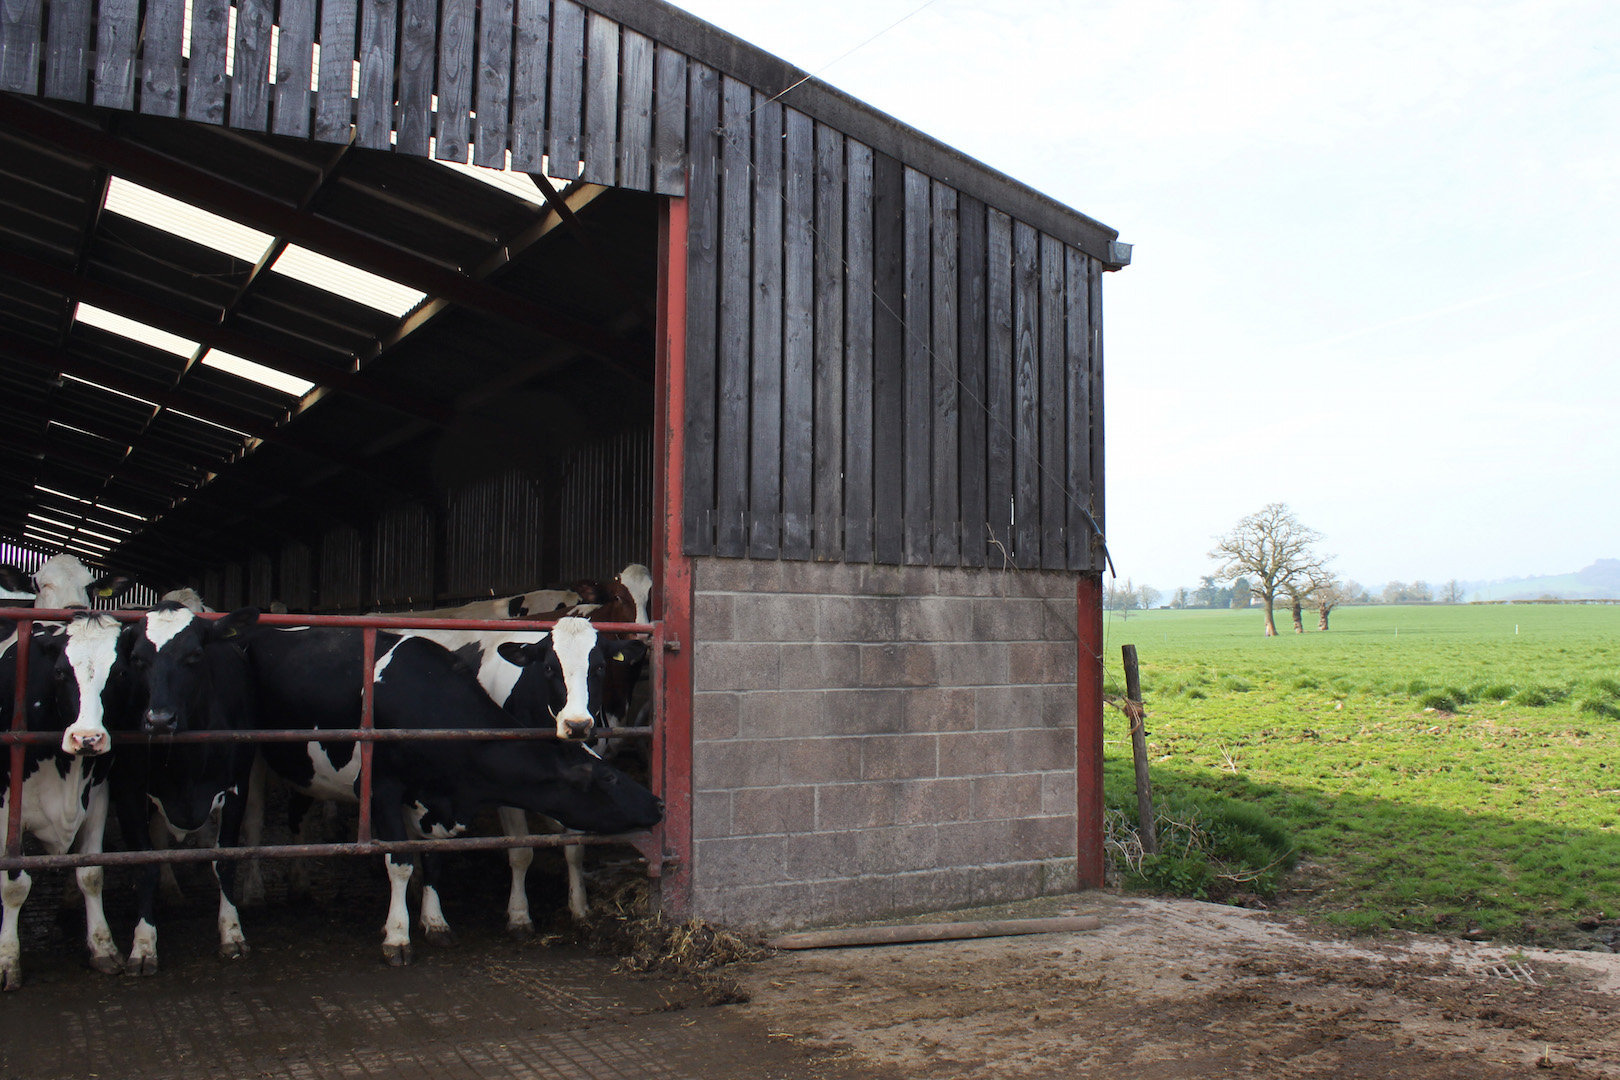 Cow Shed, Bosley Mill Farm, Gloucestershire